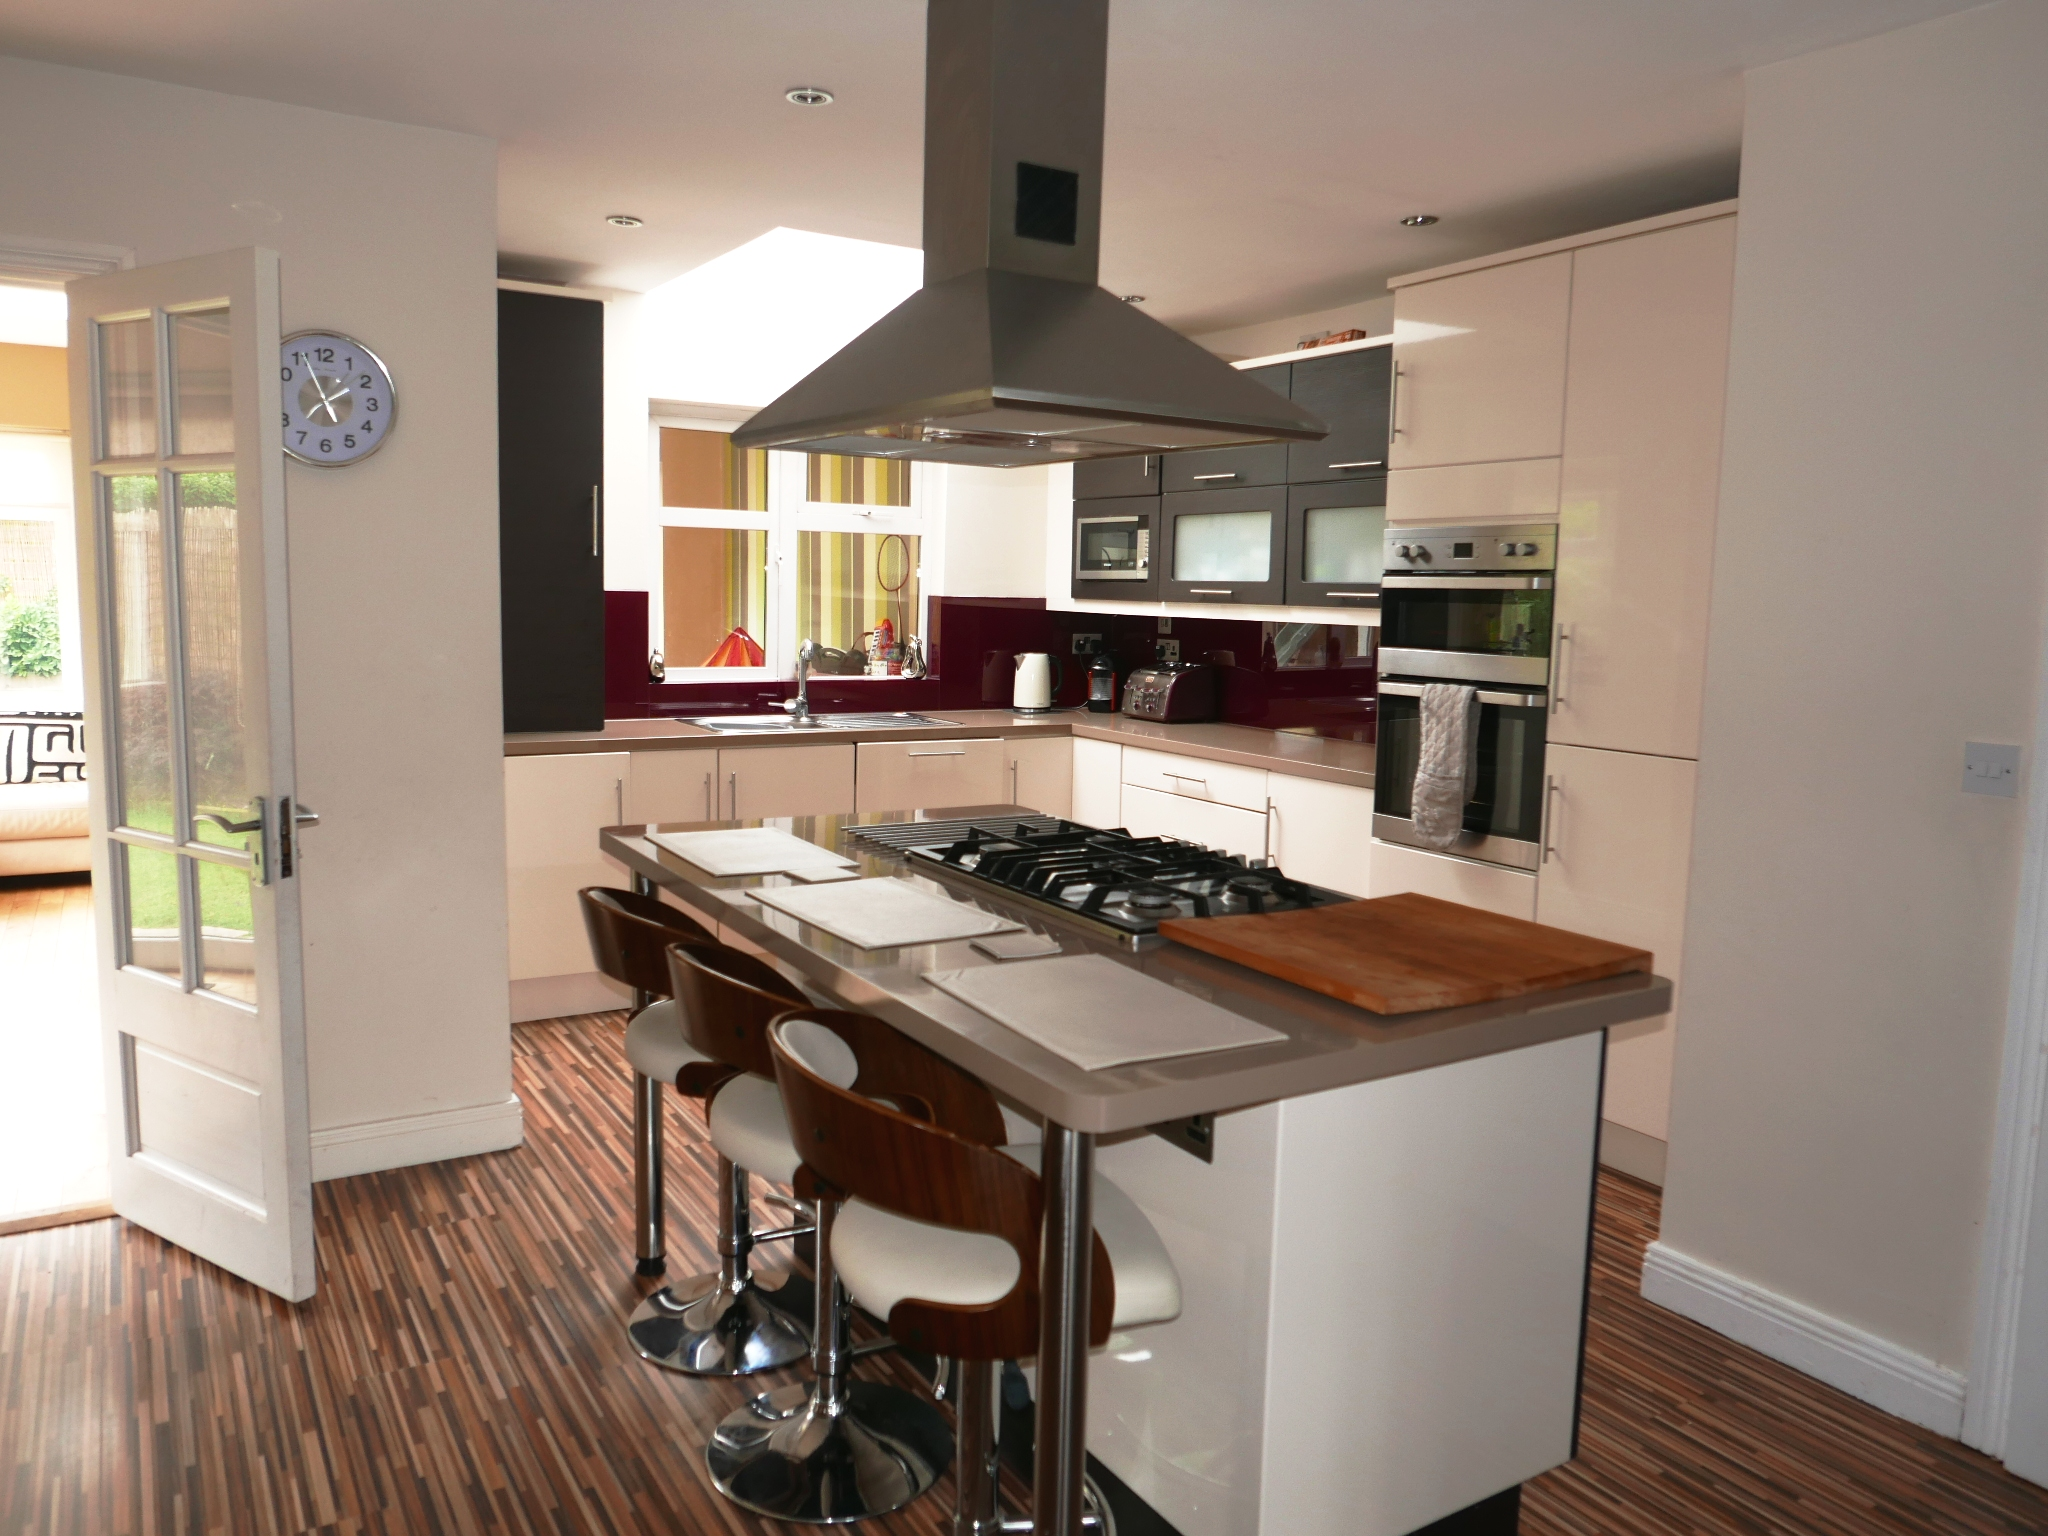 Superb 4 Bed Semi Detached House With Rear Extension